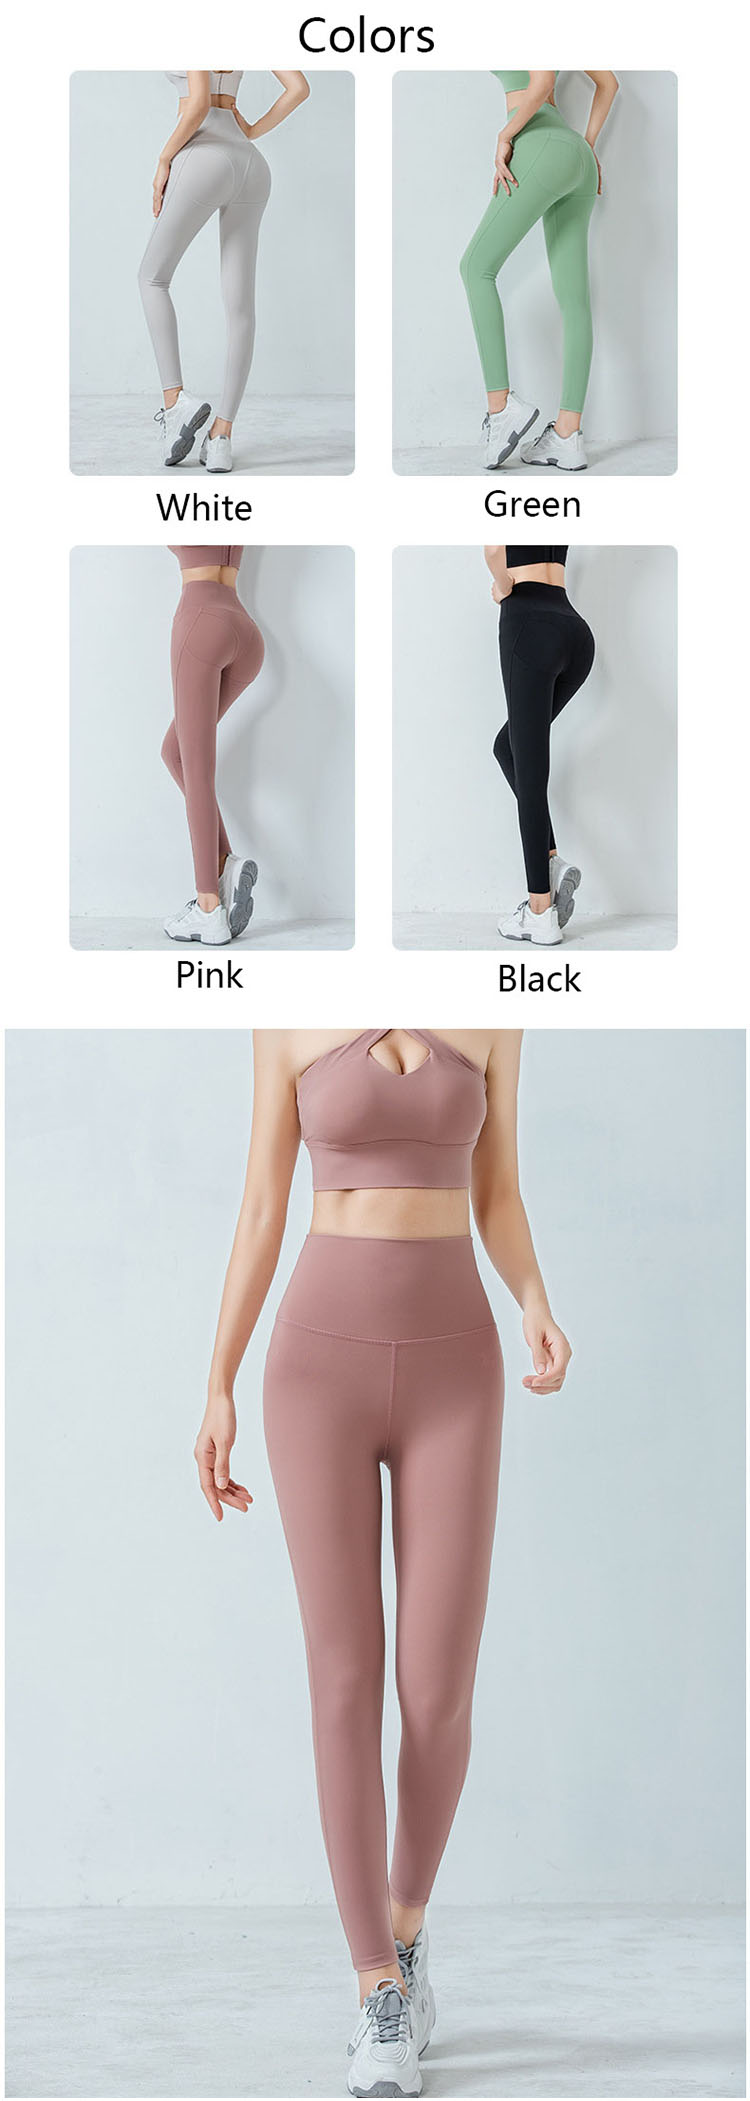 The buttocks design, outlines the perfect peach buttocks.